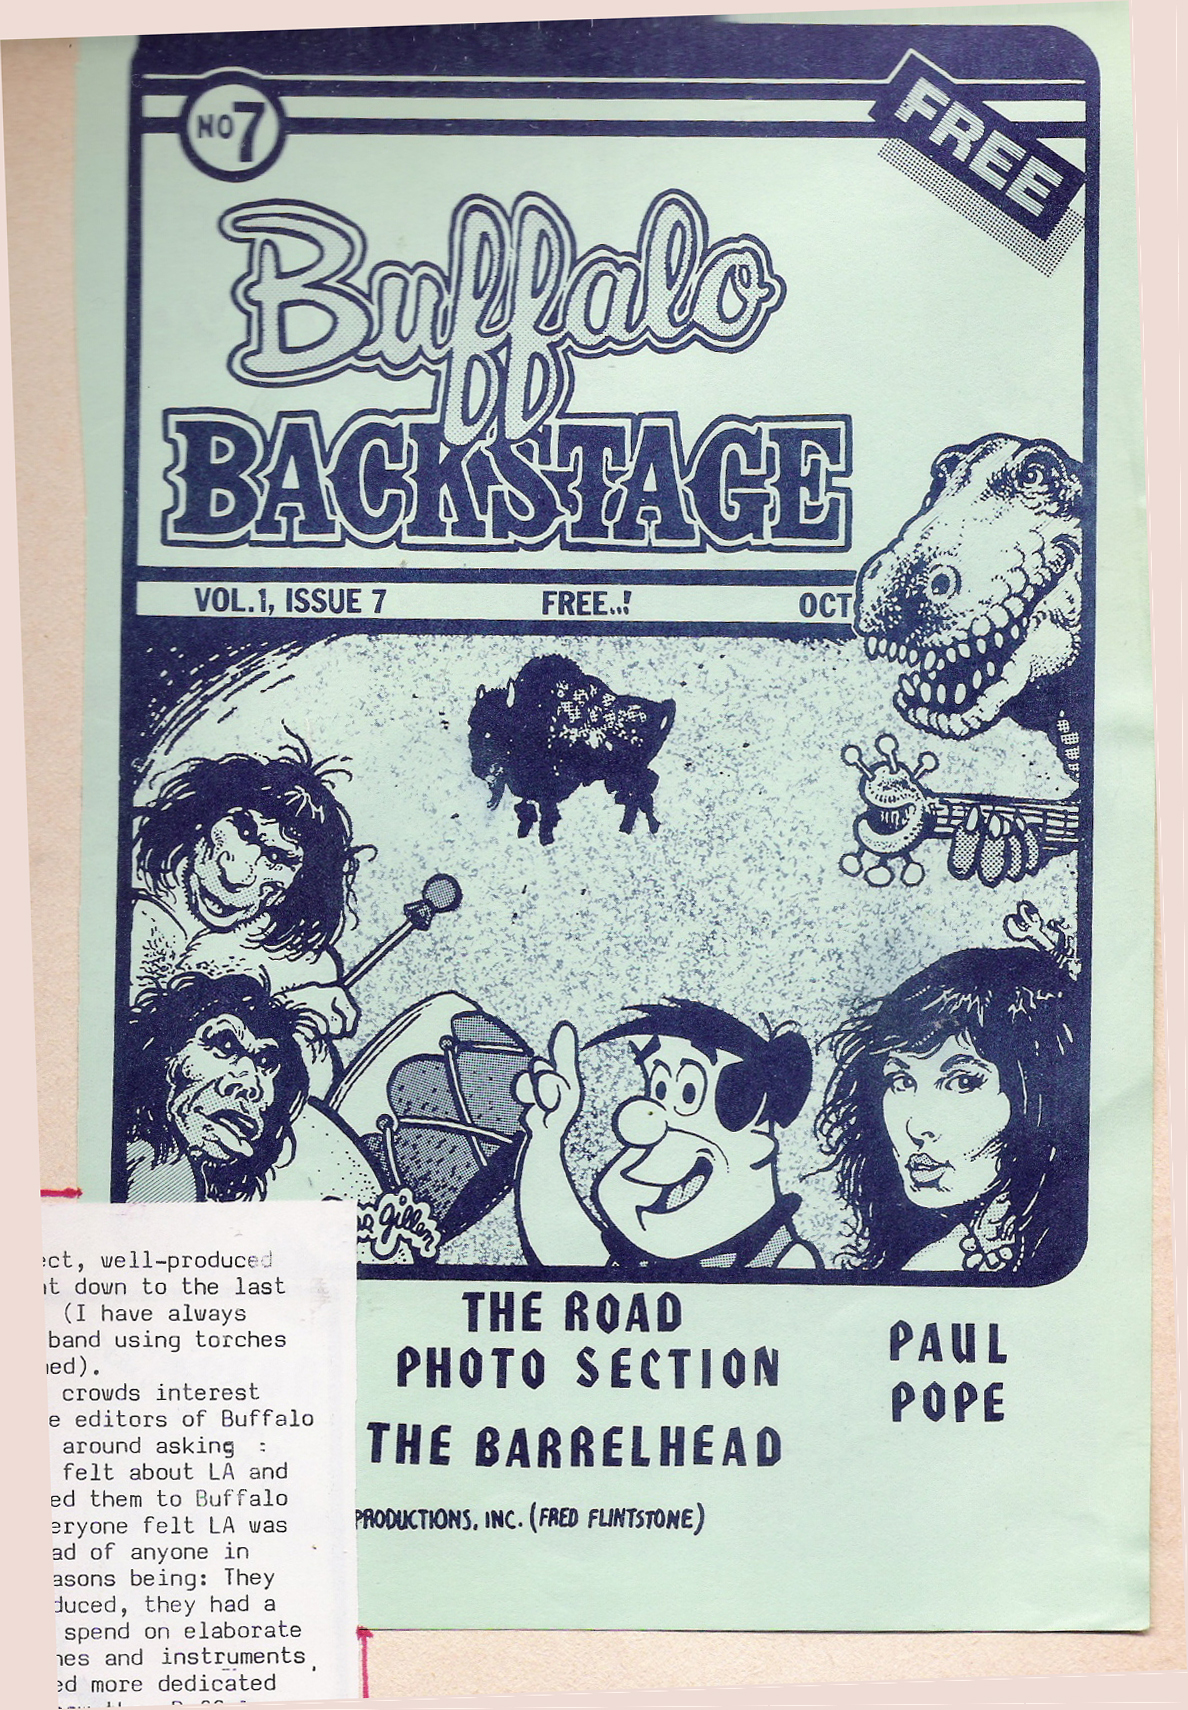 Buffalo Backstage Cover Art Oct. 1981